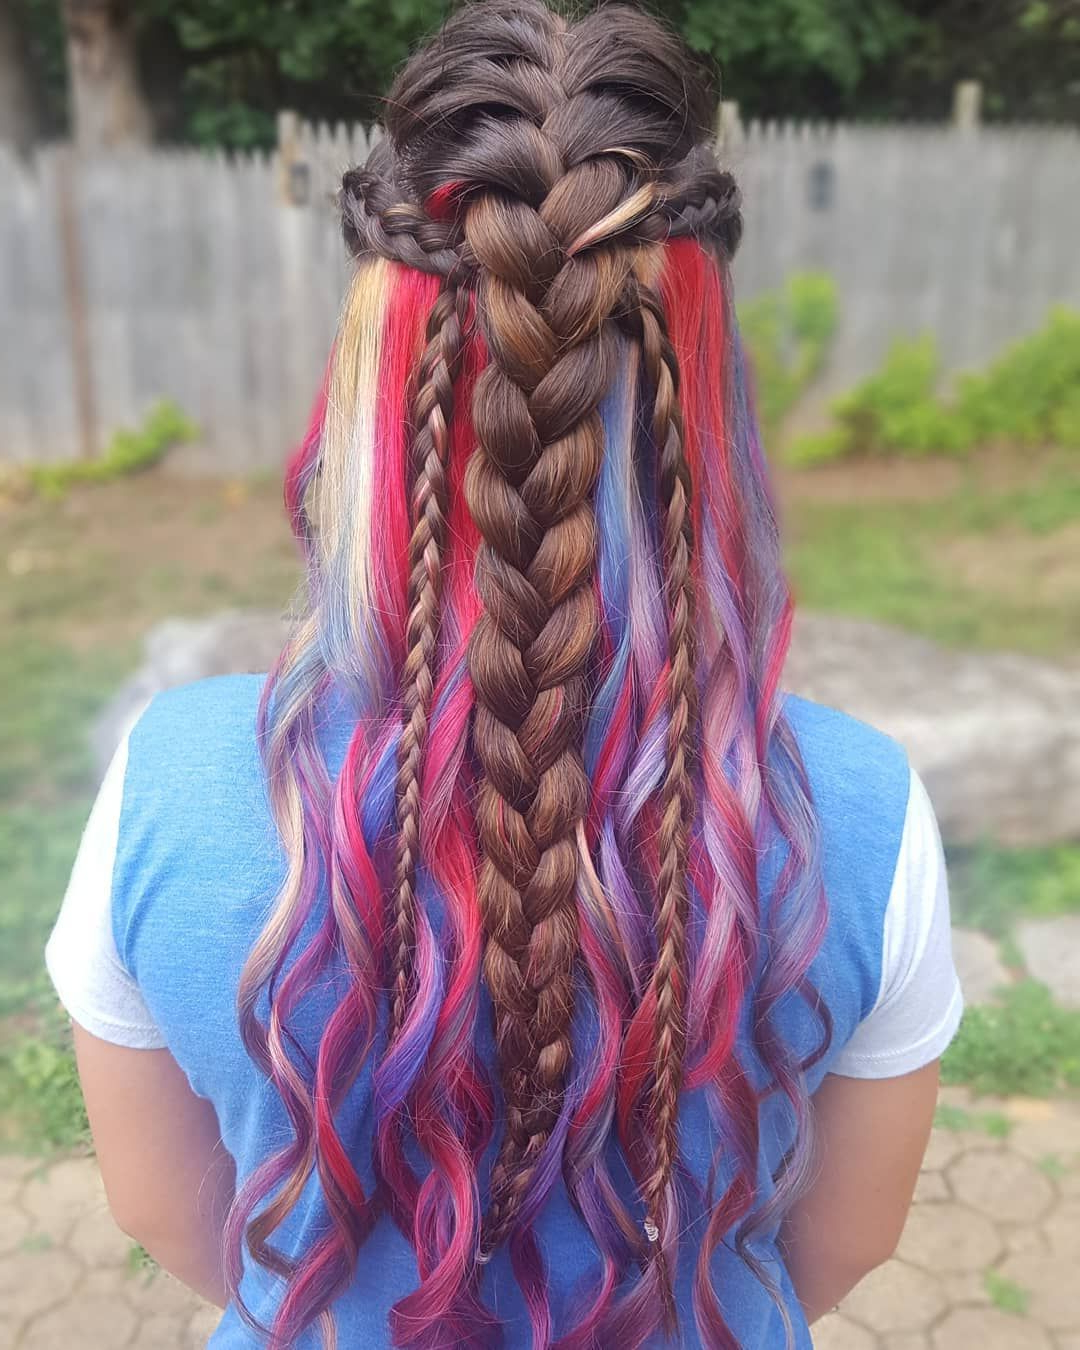 Preferred Peek A Boo Braid Hairstyles Pertaining To Red White And Blue Peekaboo Hair Color With Fun Festival (Gallery 6 of 20)